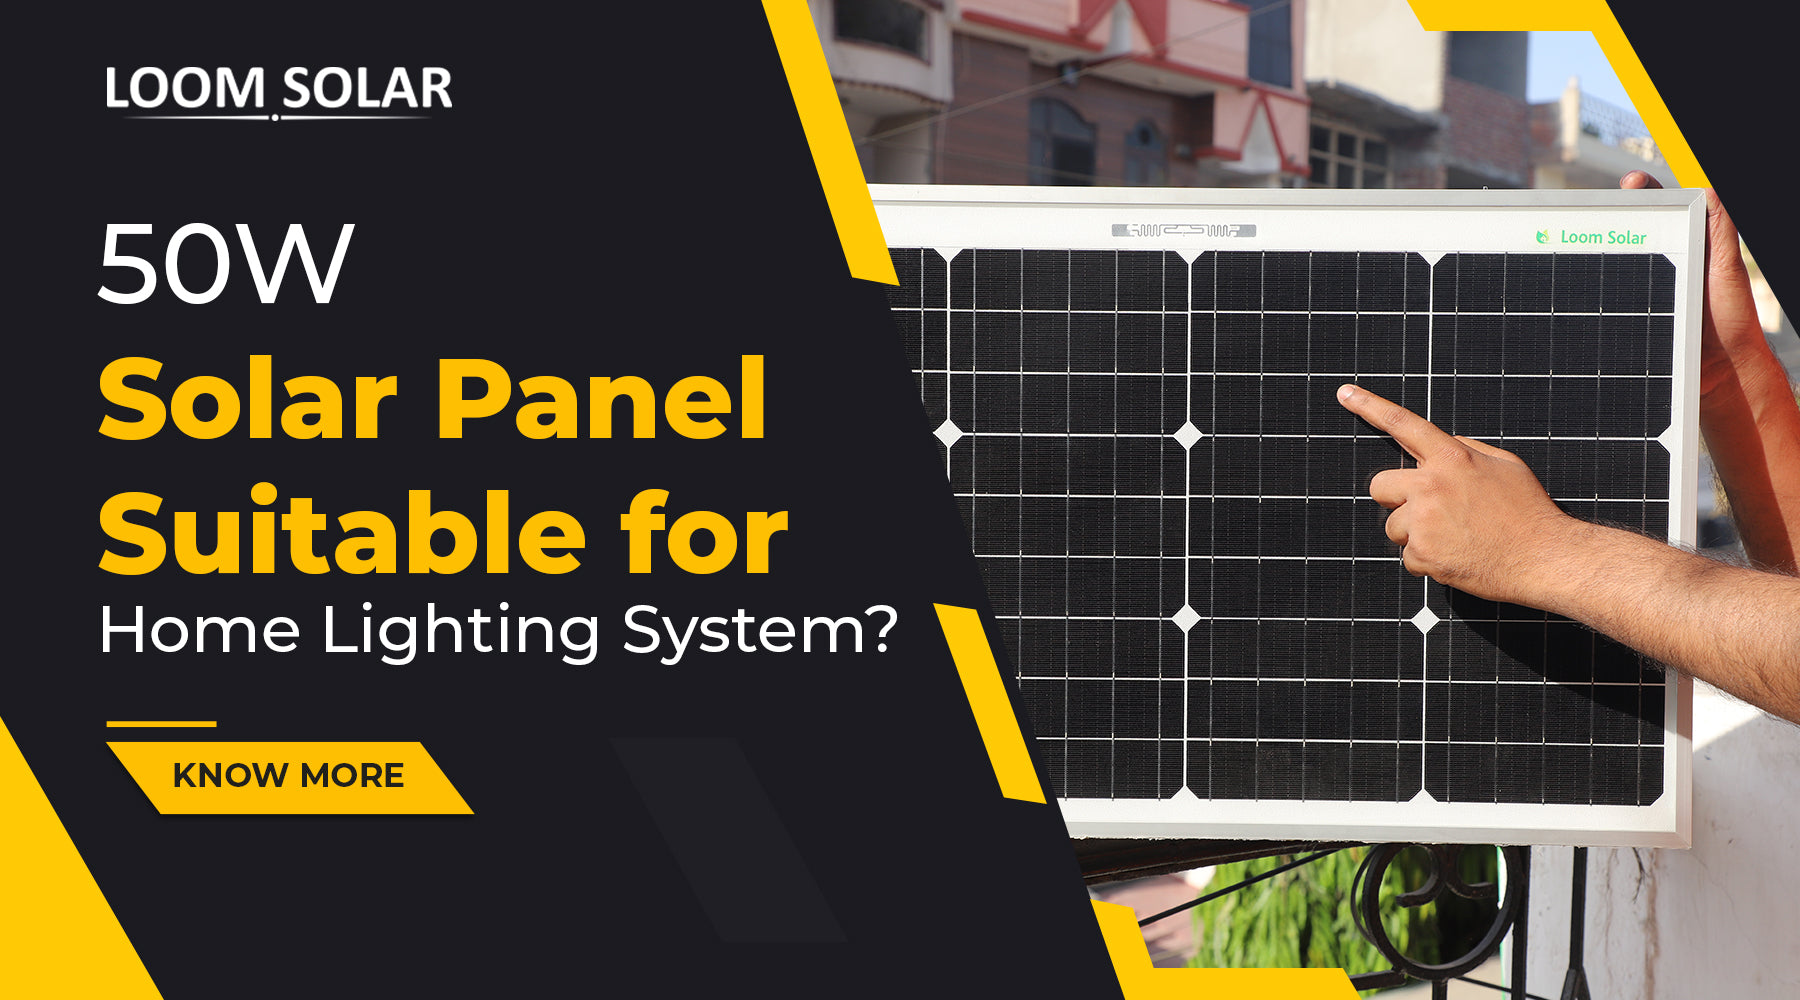 Is 50W Solar Panel Suitable for Home Lighting System?